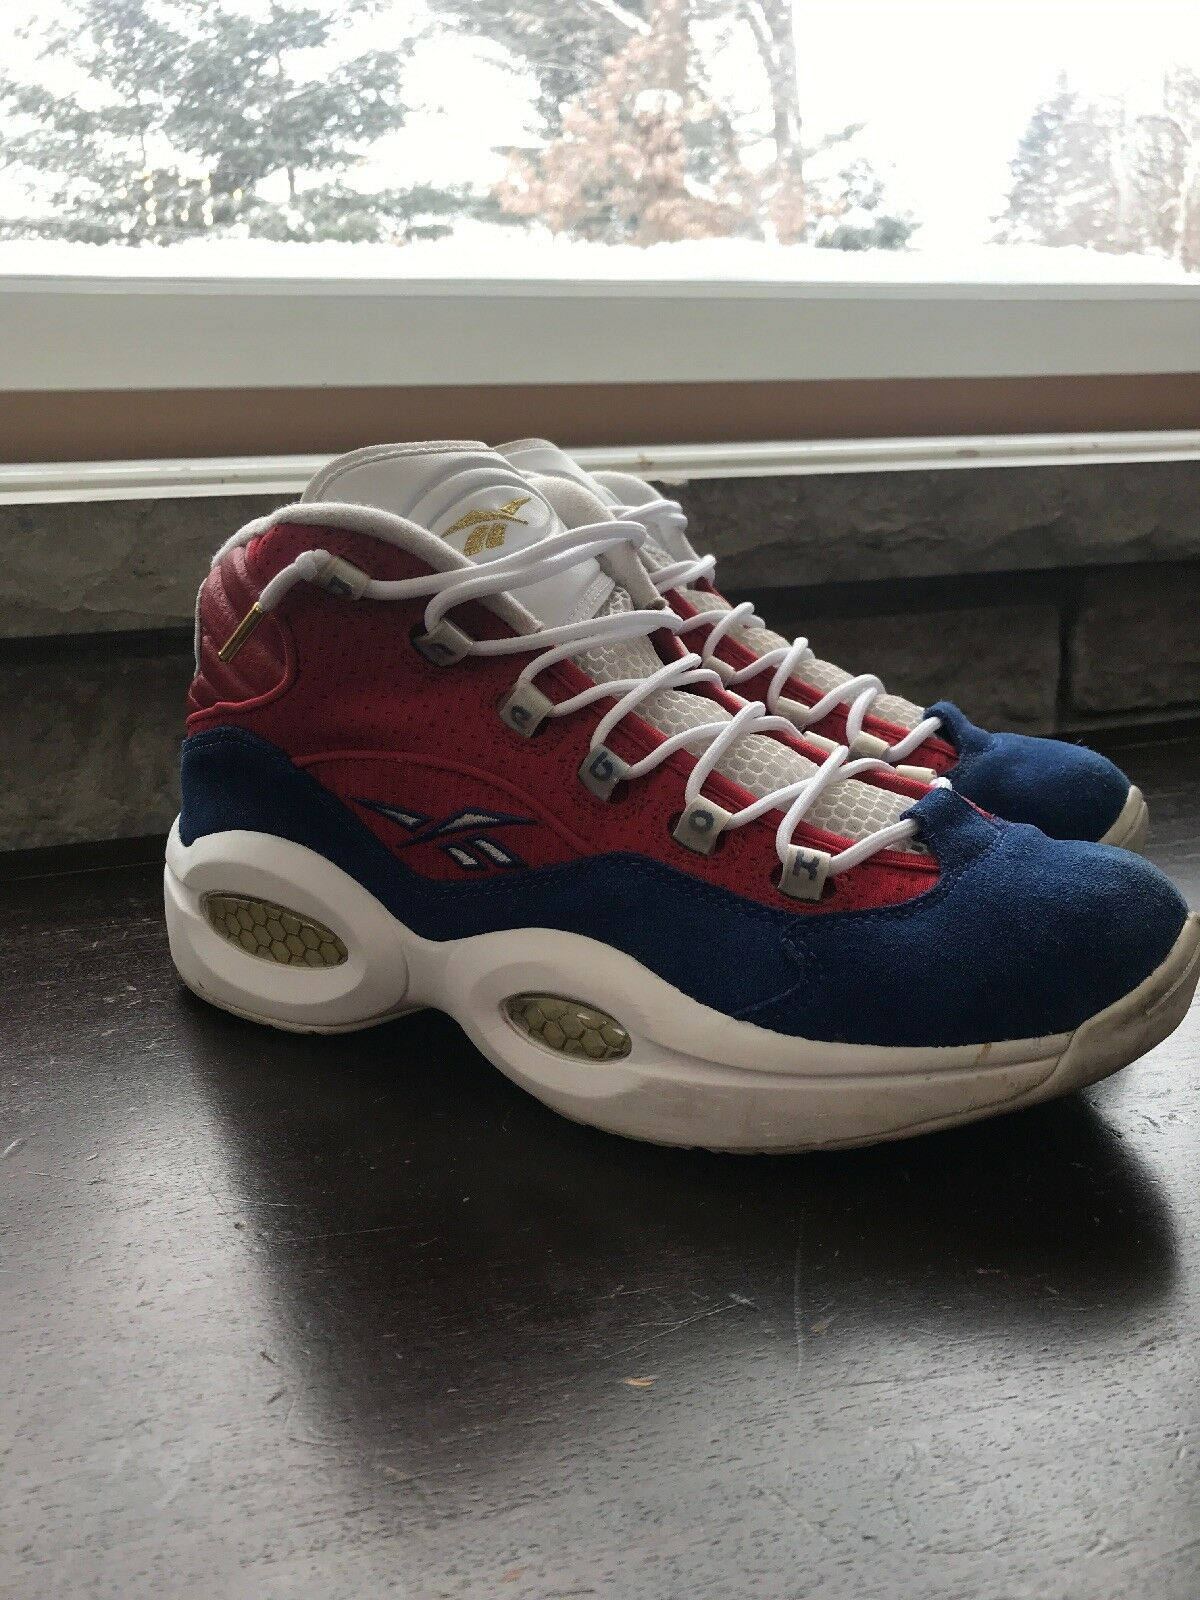 8027ef1ade3bb Reebok Question Allen Iverson Banner Size 11 Used Good Condition Extremely  Rare